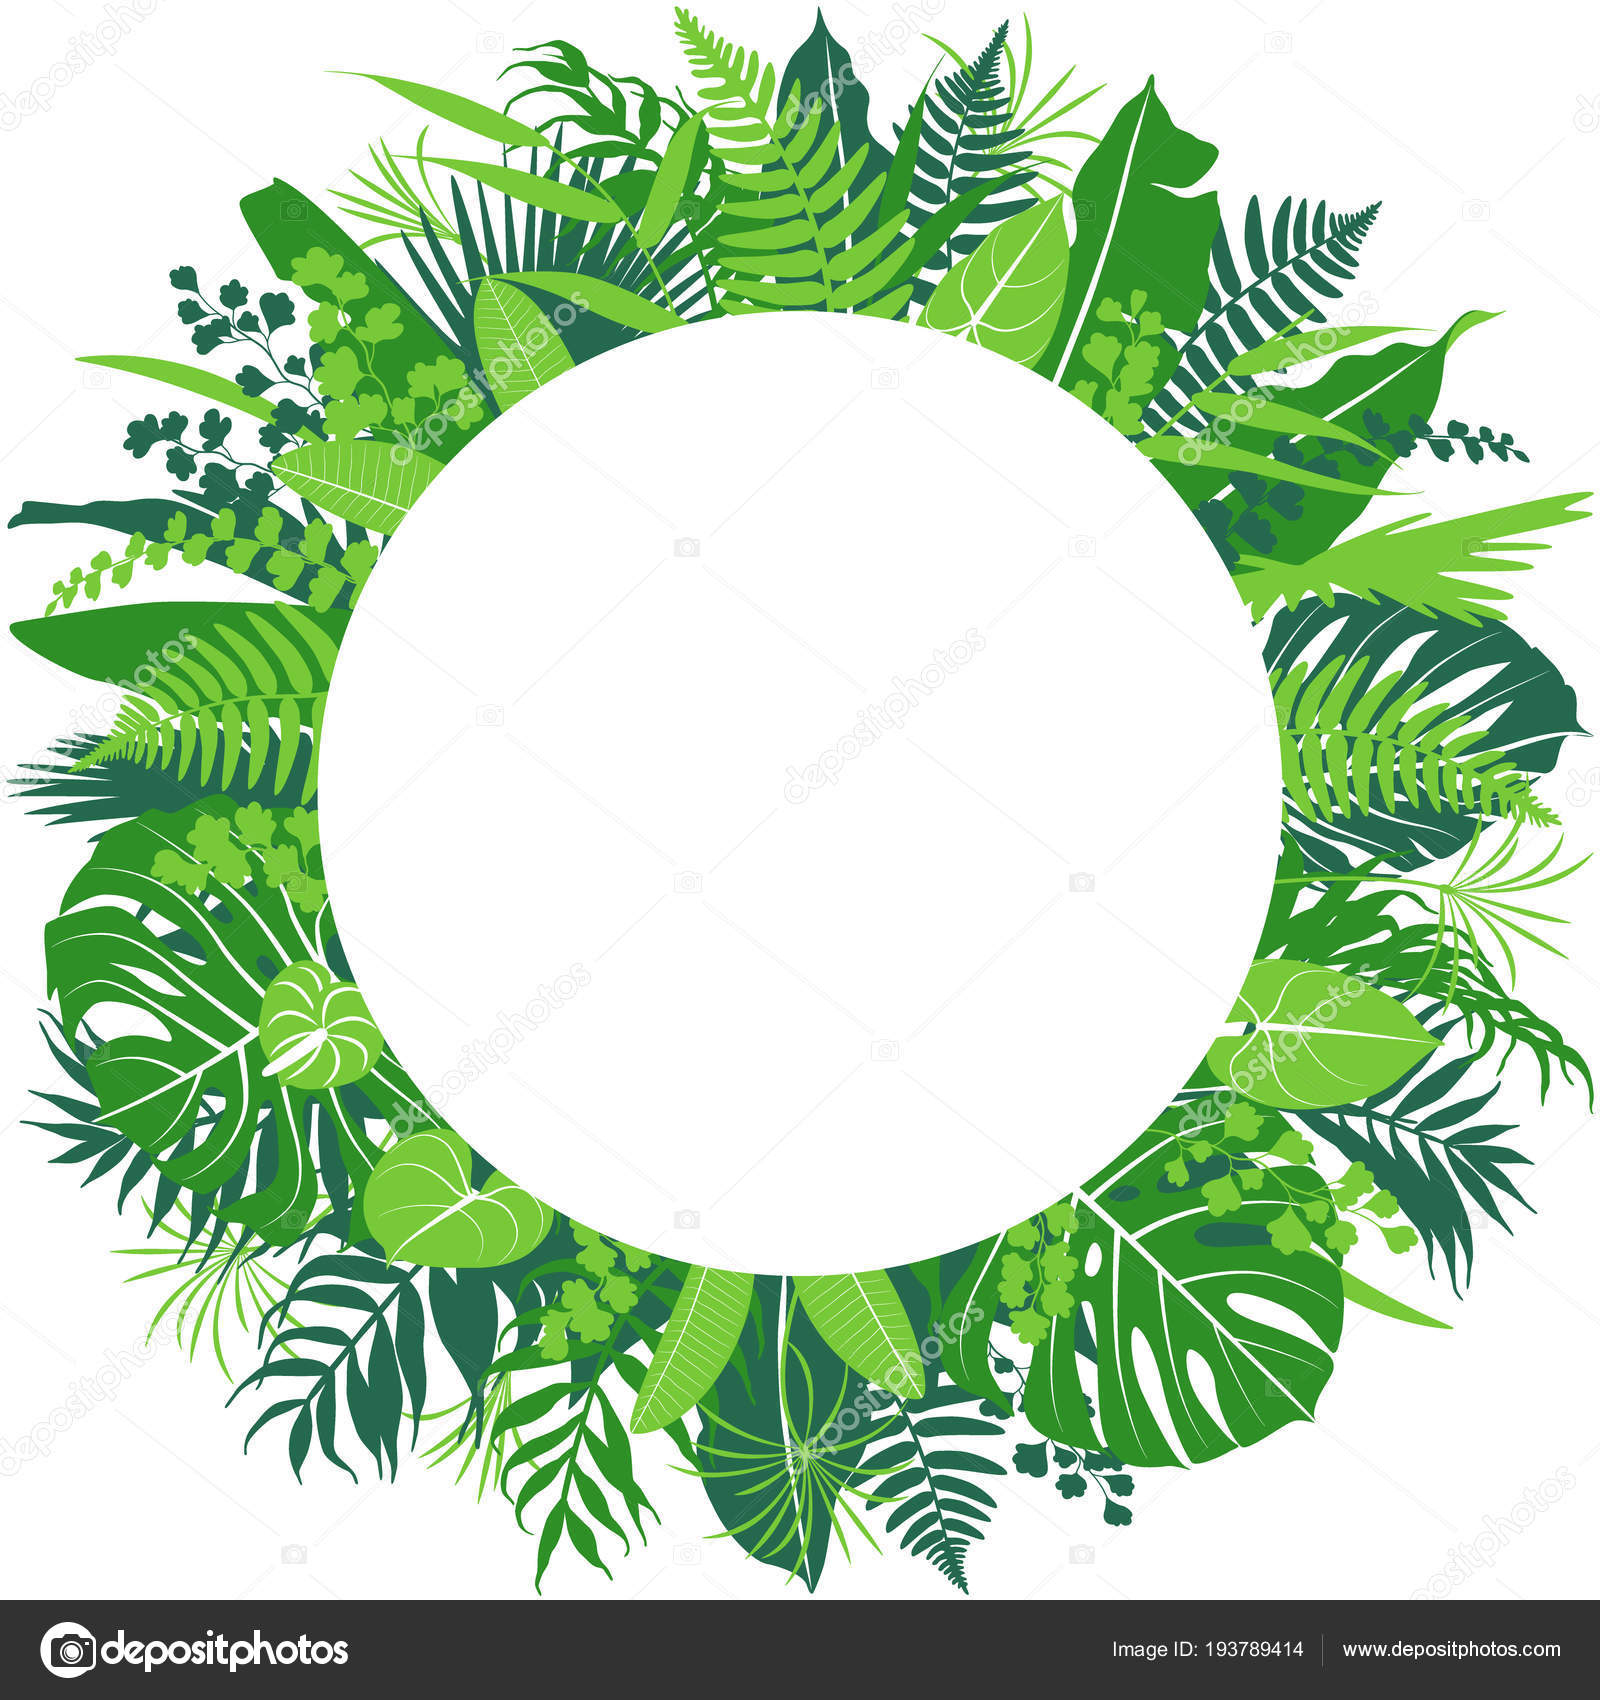 Tropical Leaves Round Frame Stock Vector C Valiva 193789414 Choose from over a million free vectors, clipart graphics, vector art images, design templates, and illustrations created by artists worldwide! https depositphotos com 193789414 stock illustration tropical leaves round frame html